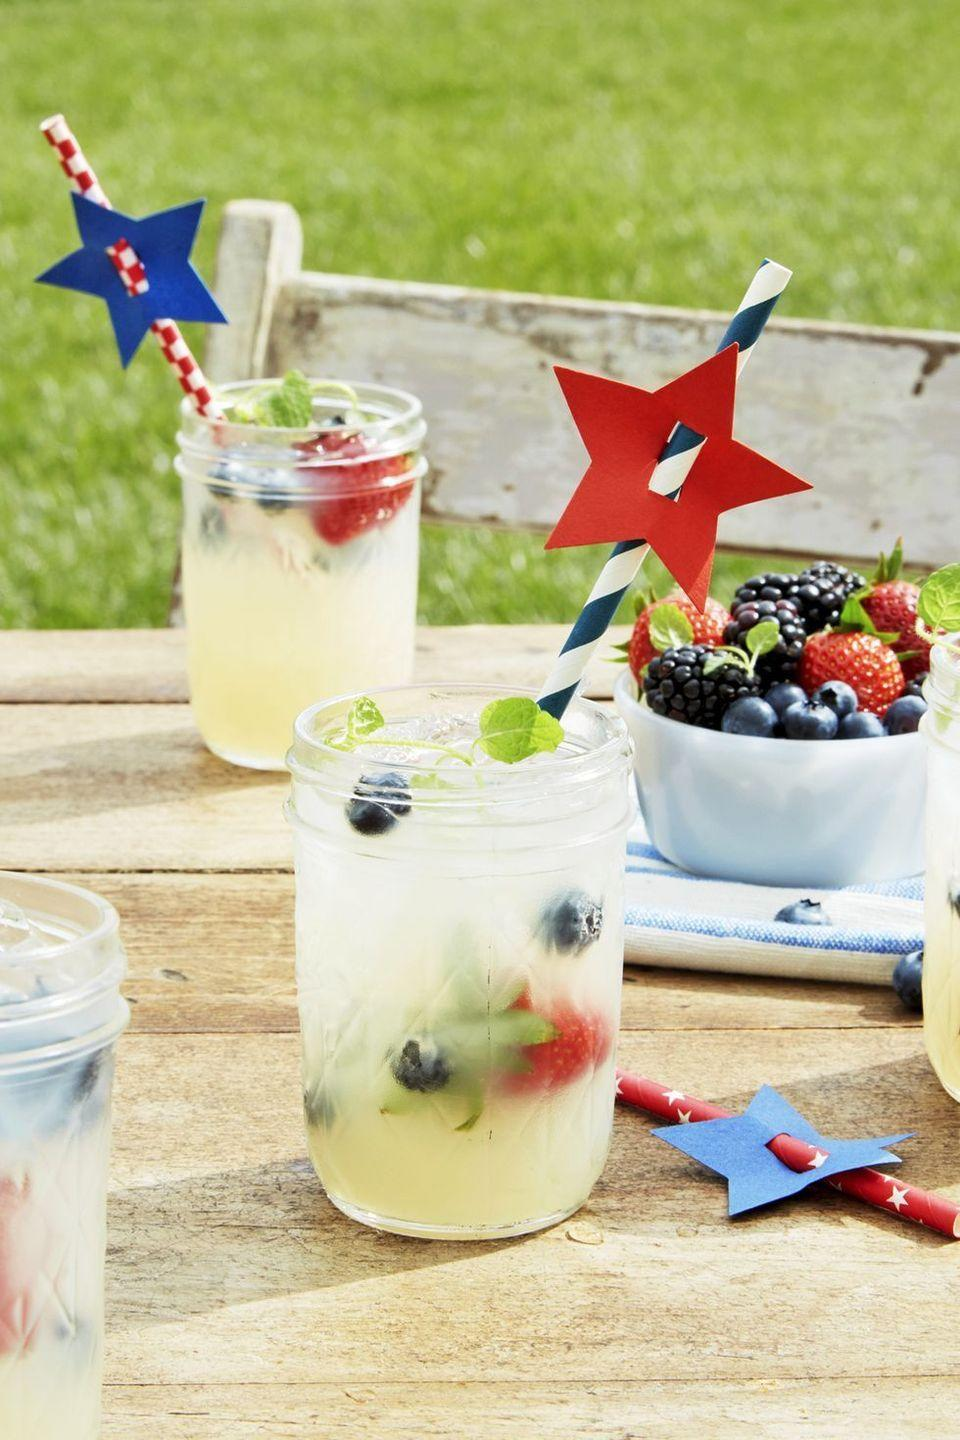 """<p>As easy as 1, 2, 3—sugar, fresh lemon juice, and water—are all it takes to whip up a batch of good 'ole fashioned lemonade. Add vodka or gin for an adult kick.<br><br><strong><a href=""""https://www.countryliving.com/food-drinks/a21348860/old-fashioned-lemonade-recipe/"""" rel=""""nofollow noopener"""" target=""""_blank"""" data-ylk=""""slk:Get the recipe"""" class=""""link rapid-noclick-resp"""">Get the recipe</a></strong><strong>.</strong><br></p>"""